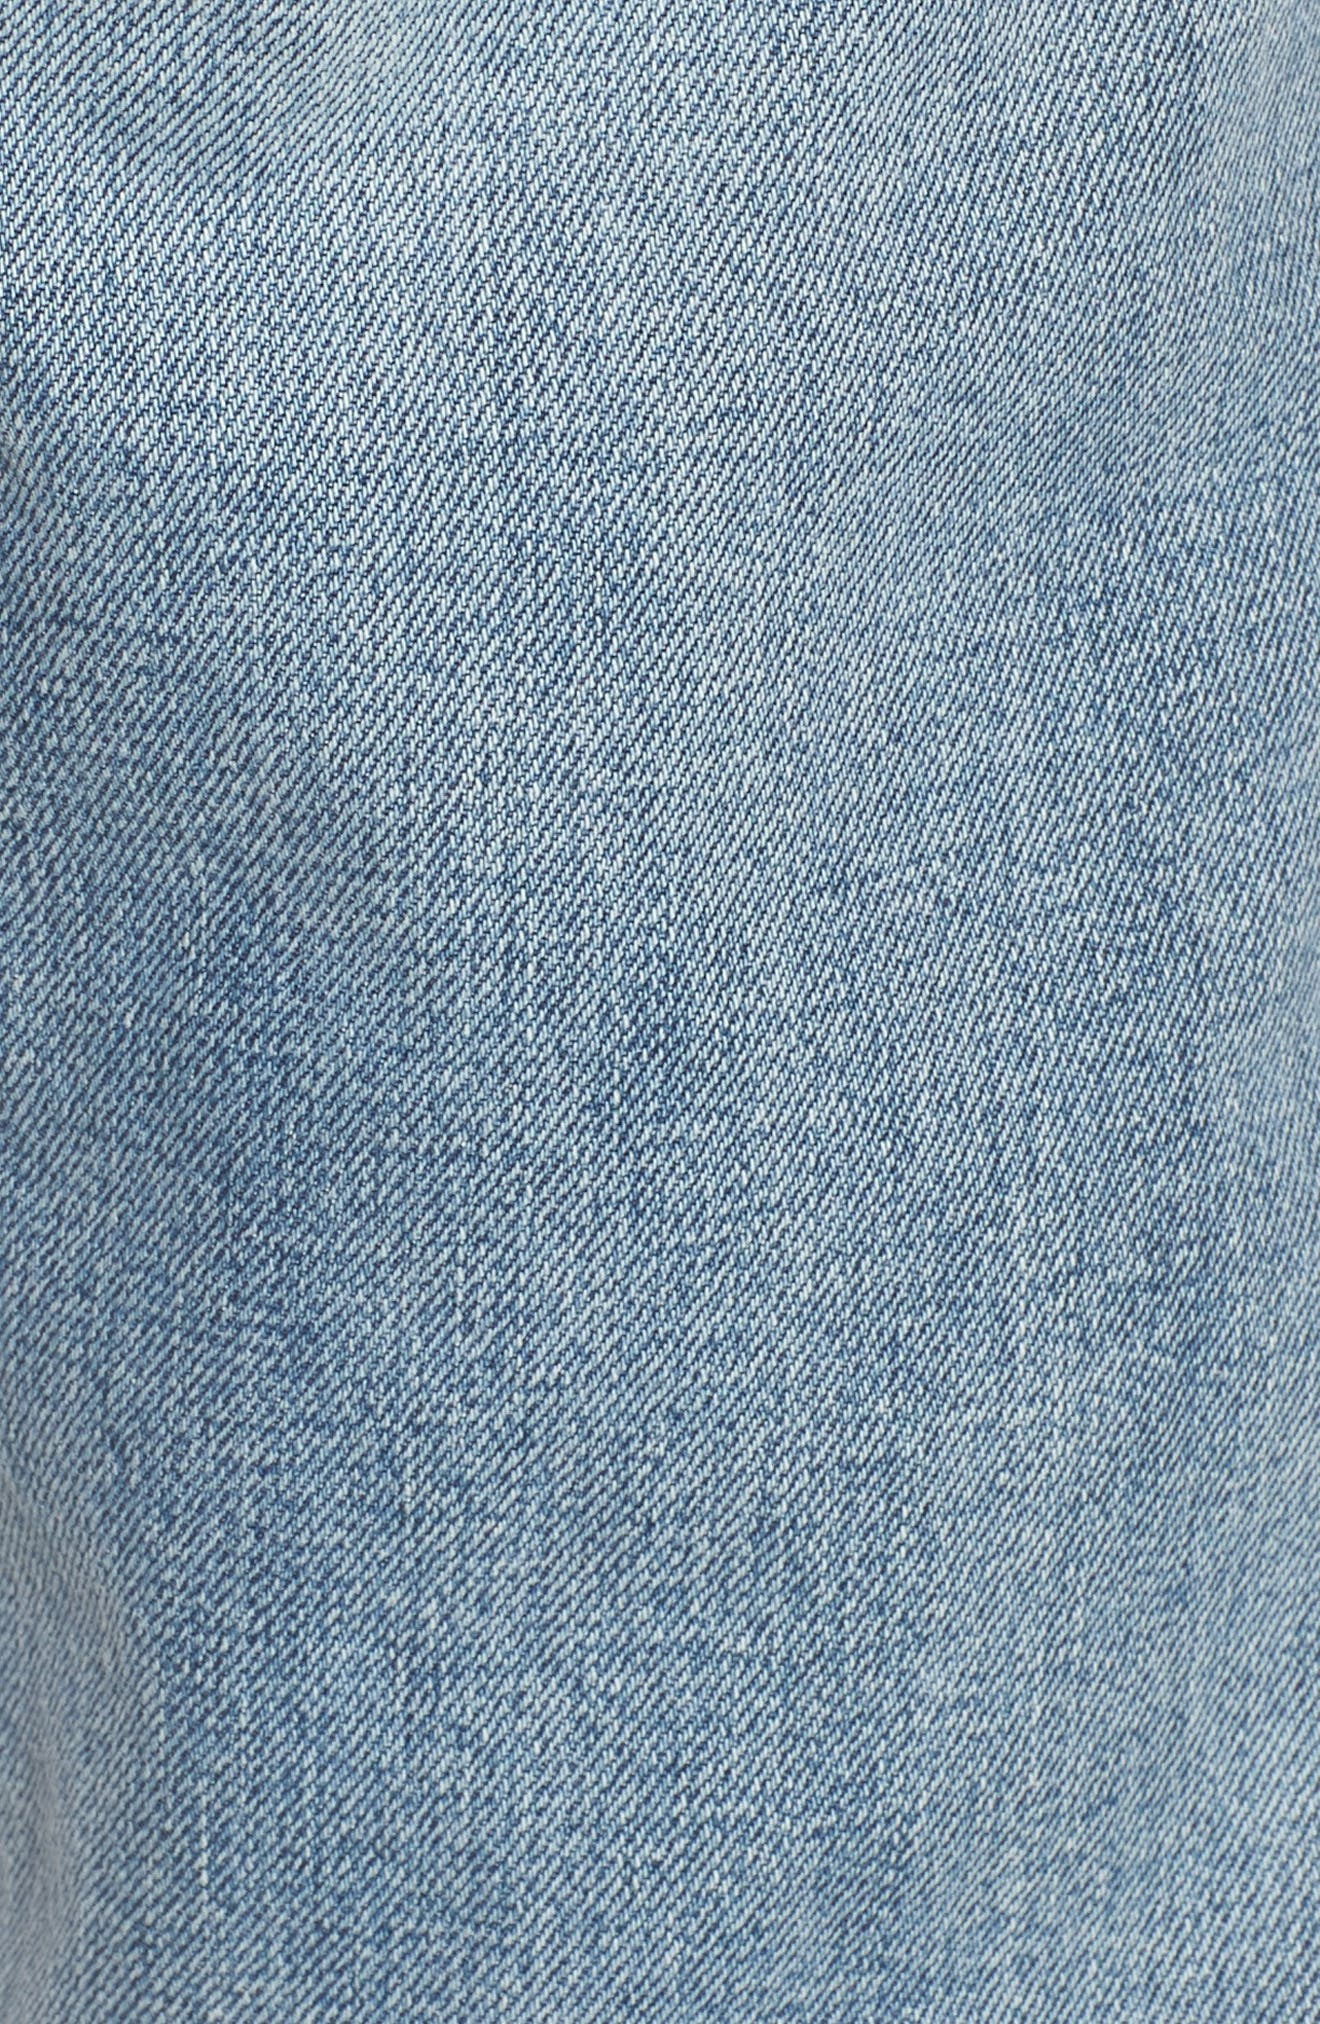 Bowery Slim Fit Jeans,                             Alternate thumbnail 5, color,                             Lone Pine